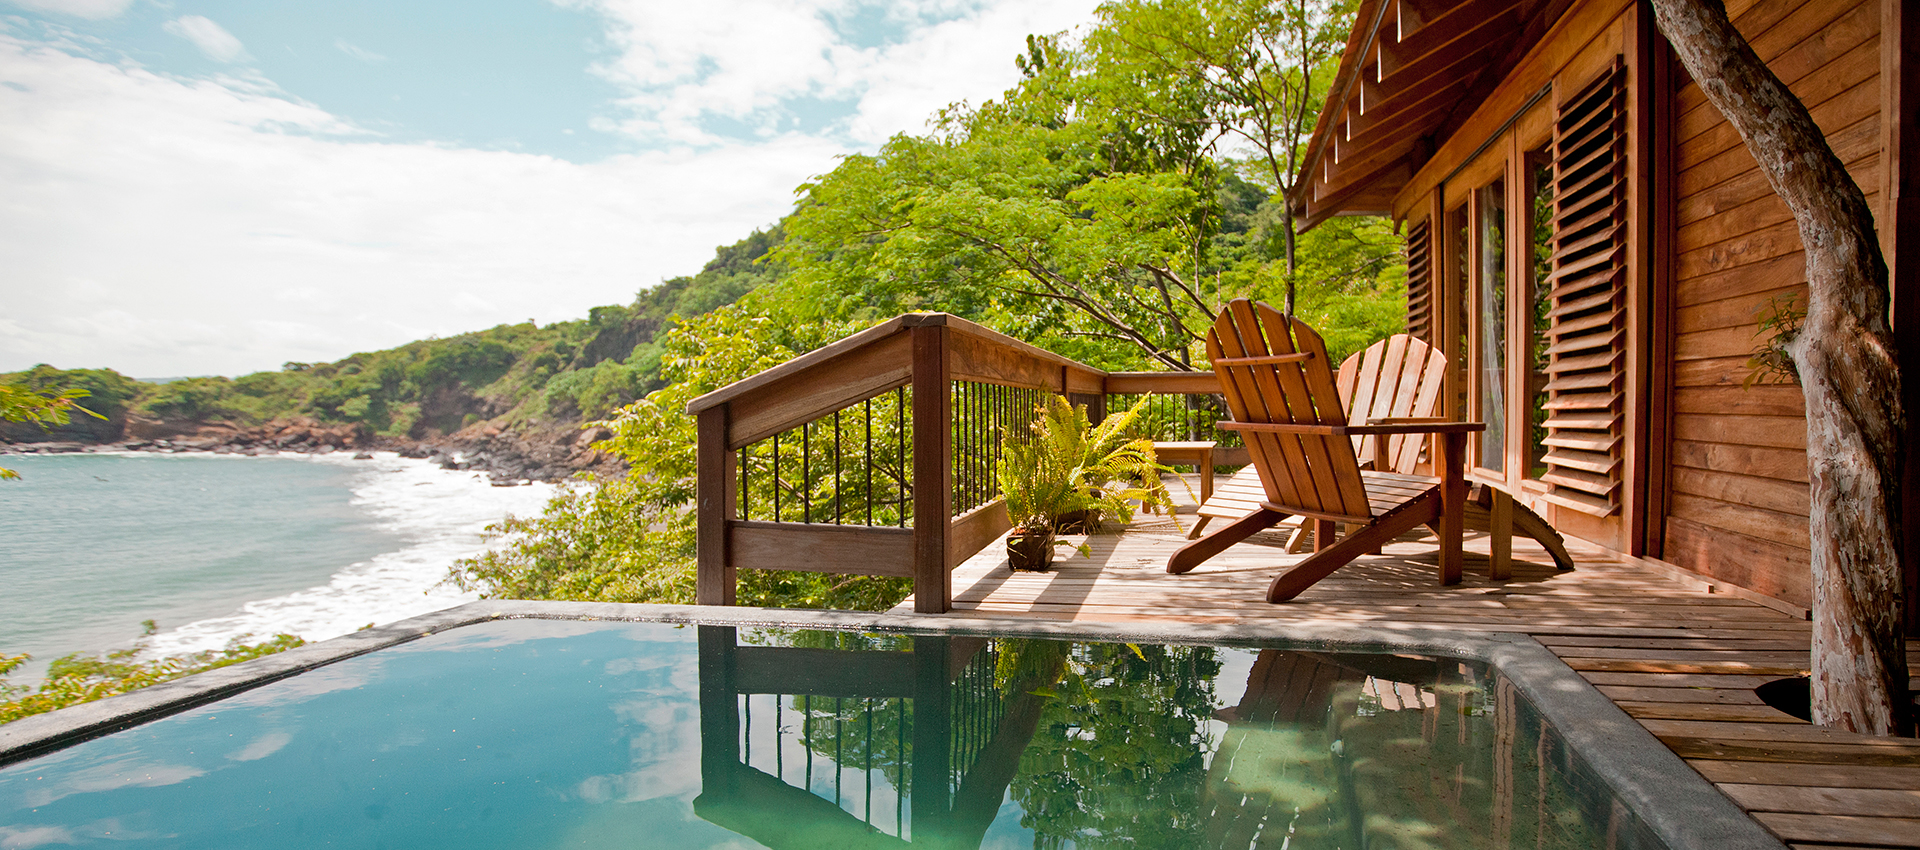 Best Health and Wellness Retreats That Will Help